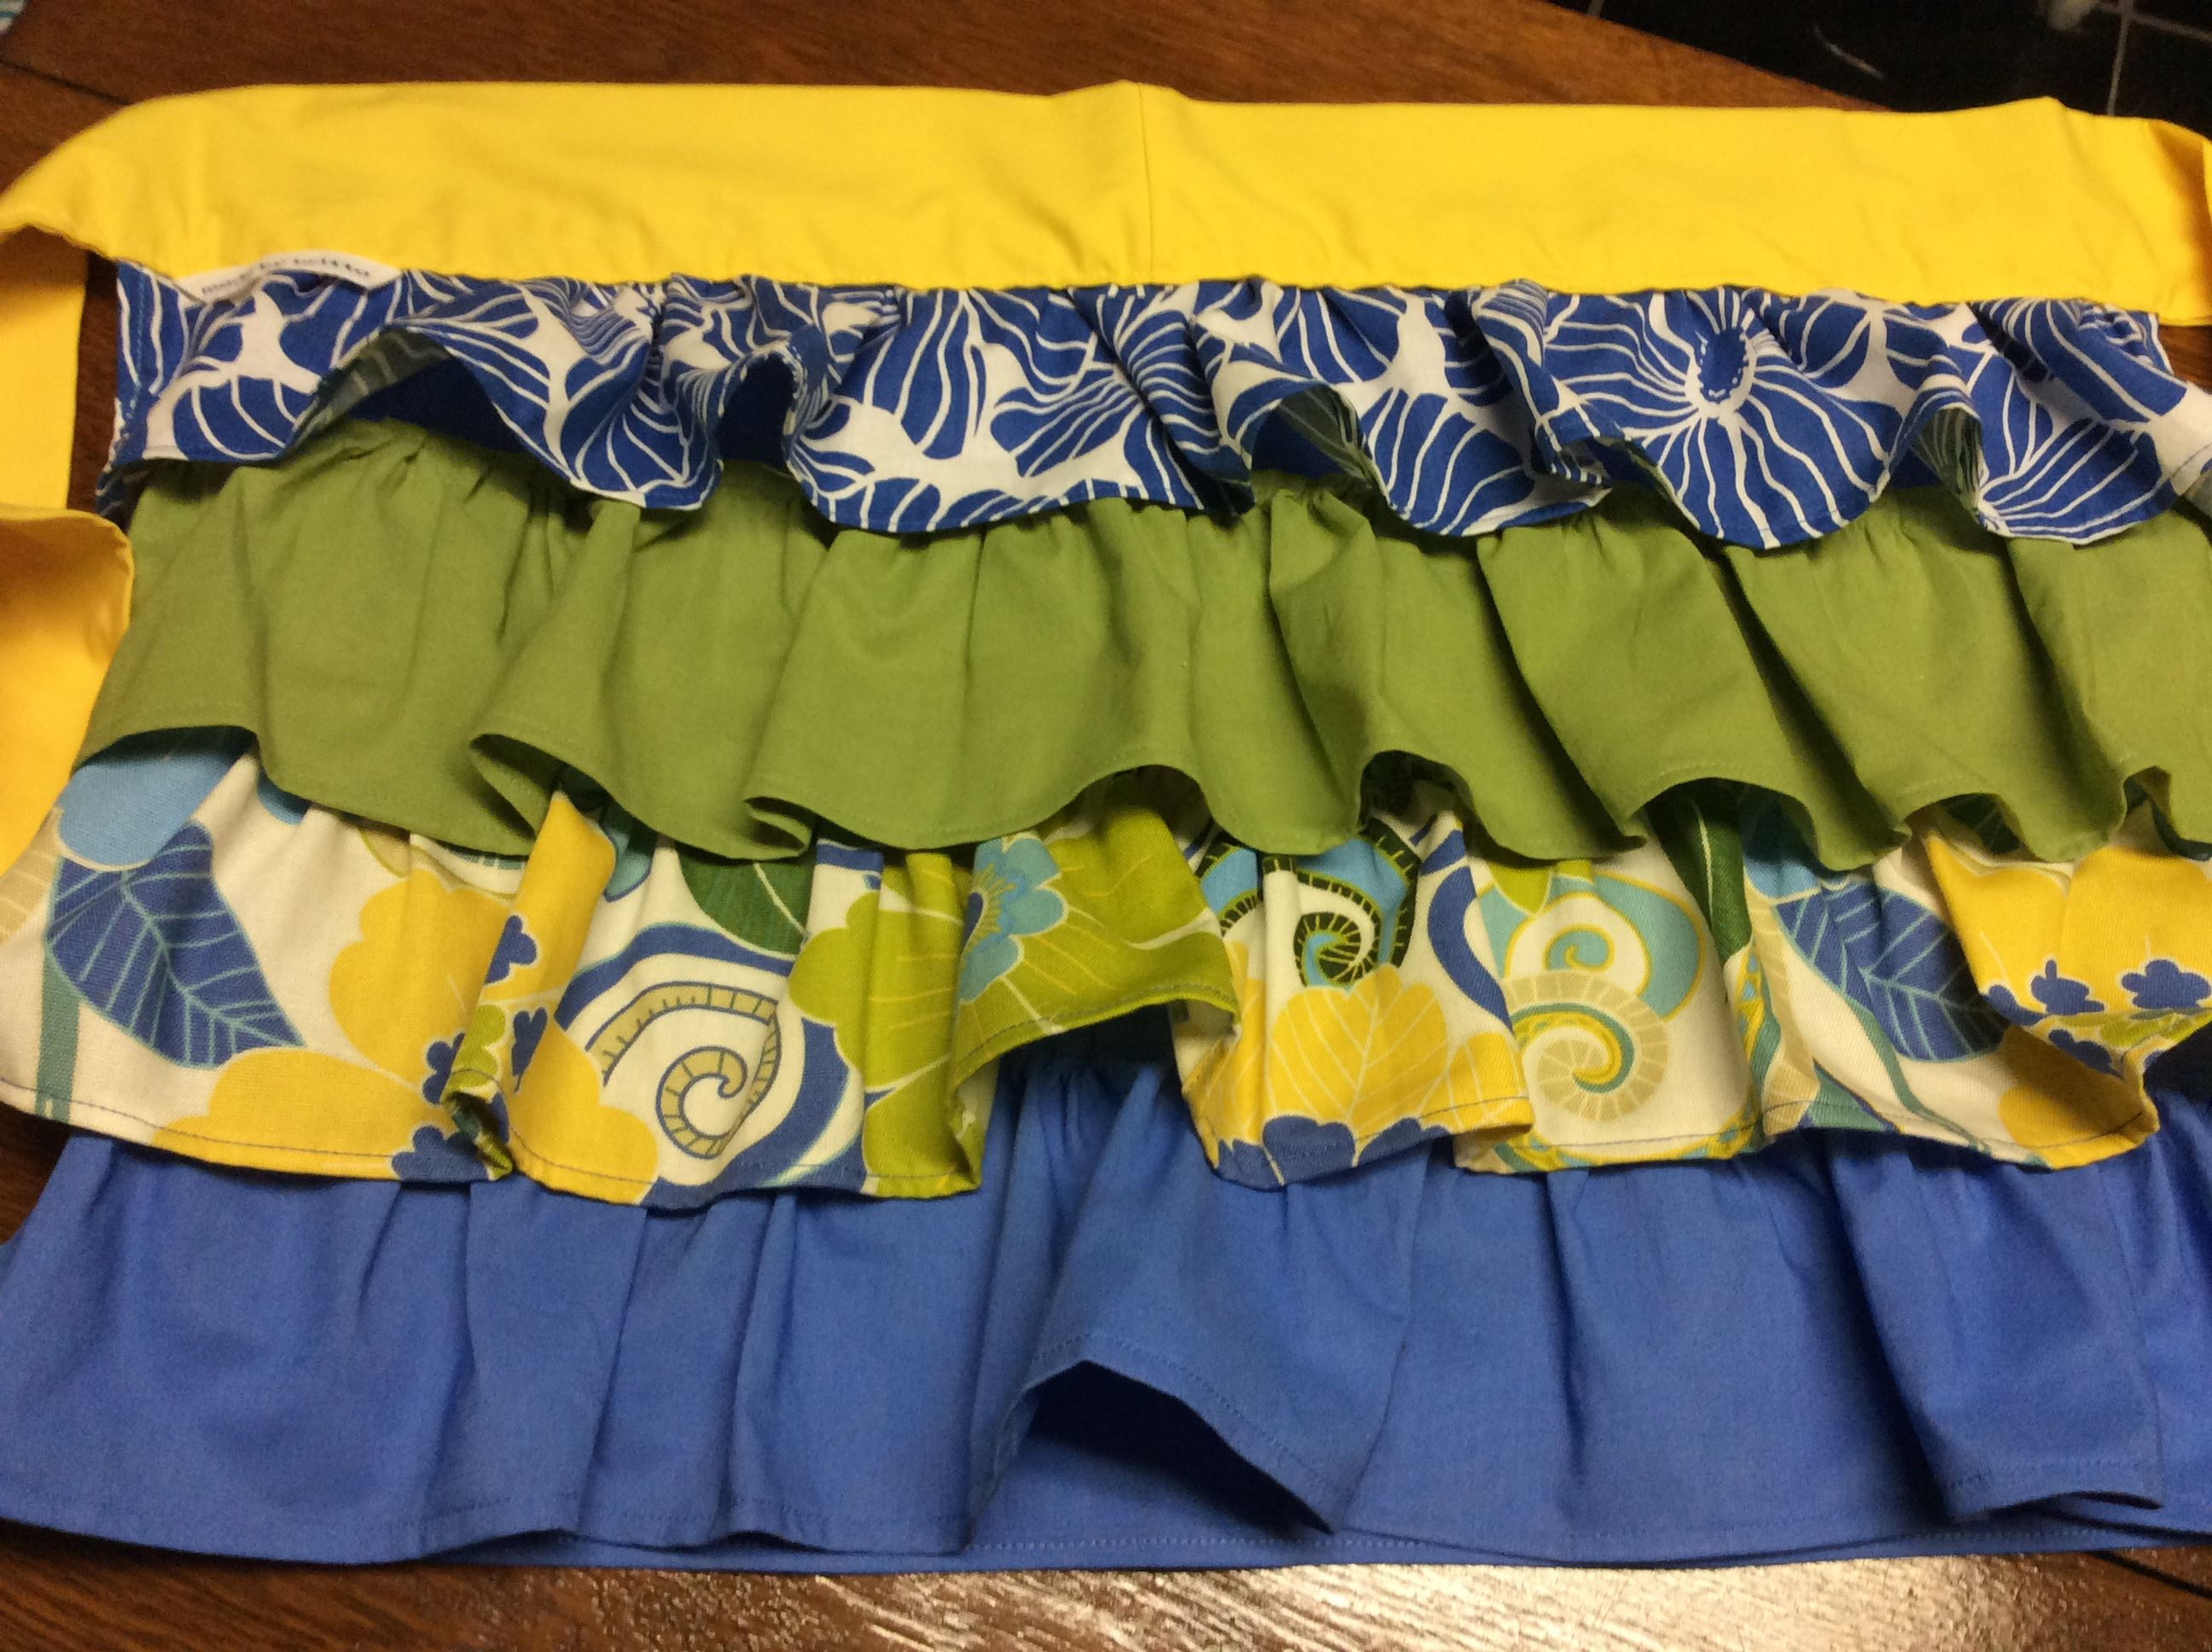 Really fun aprons, homemade by 'So Fun & Comfy by Britta'